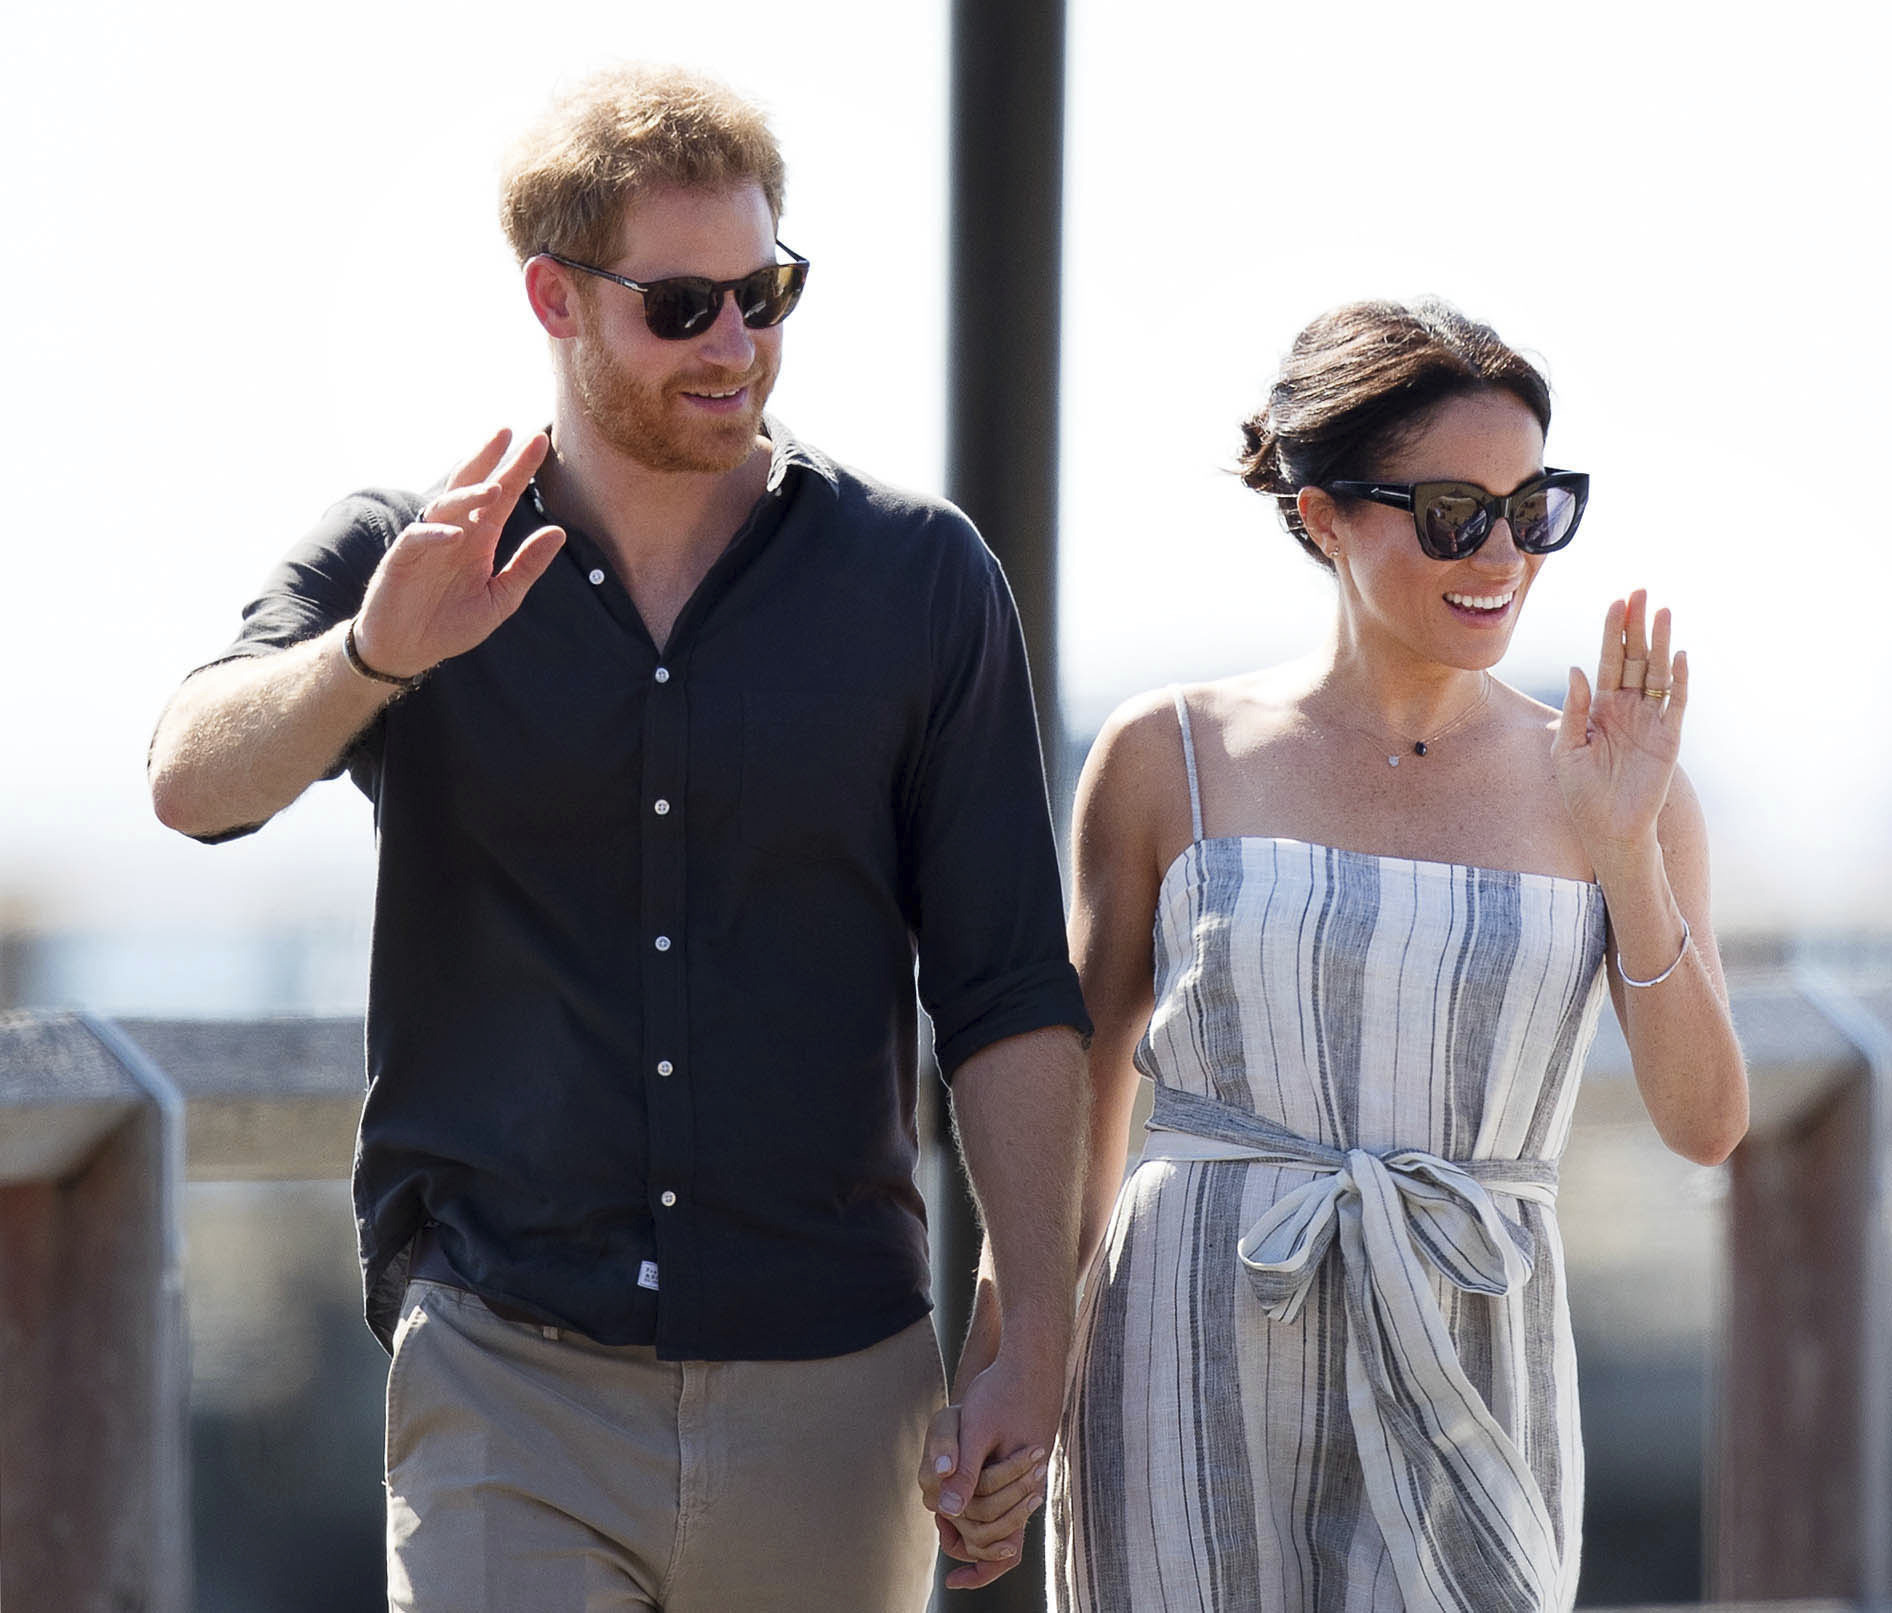 May 19th 2019 - Prince Harry The Duke of Sussex and Duchess Meghan of Sussex celebrate their first wedding anniversary. They were married at St. George's Chapel on the grounds of Windsor Castle on May 19th 2018. - File Photo by: zz/KGC-09/STAR MAX/IPx 2018 10/22/18 Prince Harry The Duke of Sussex and Meghan The Duchess of Sussex visit Kingfisher Bay Resort on Fraser Island in Australia.